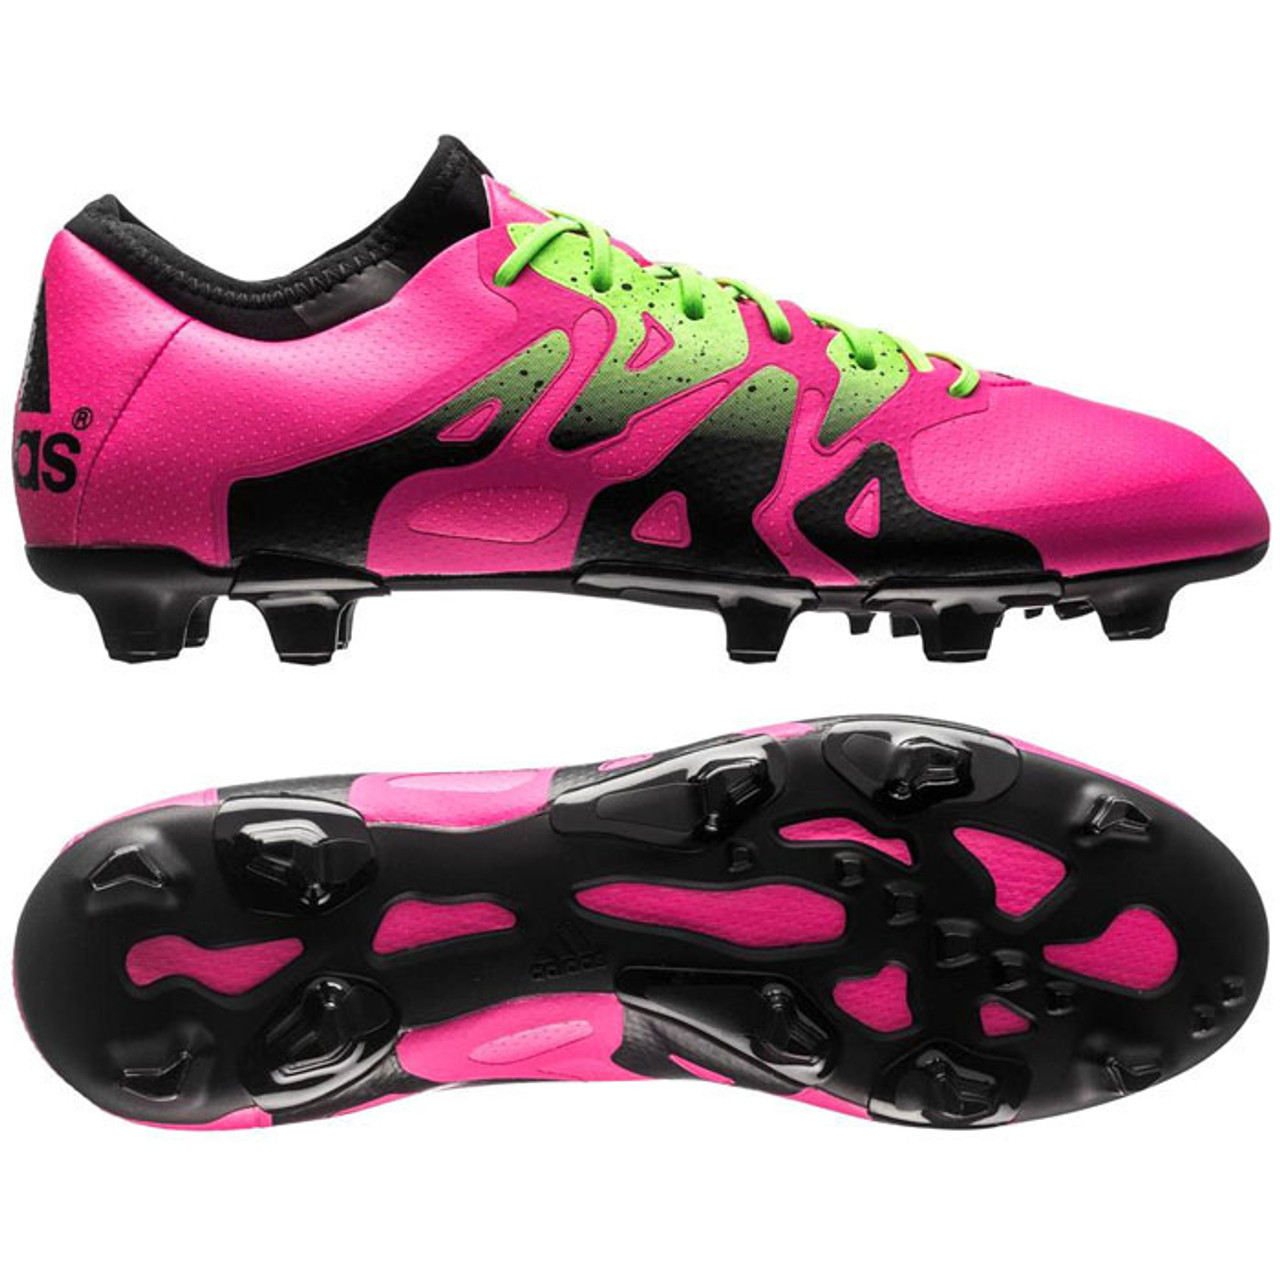 the latest eb83a b429b ADIDAS X 15.1 FG AG firm ground soccer cleats shock pink - Soccer Plus